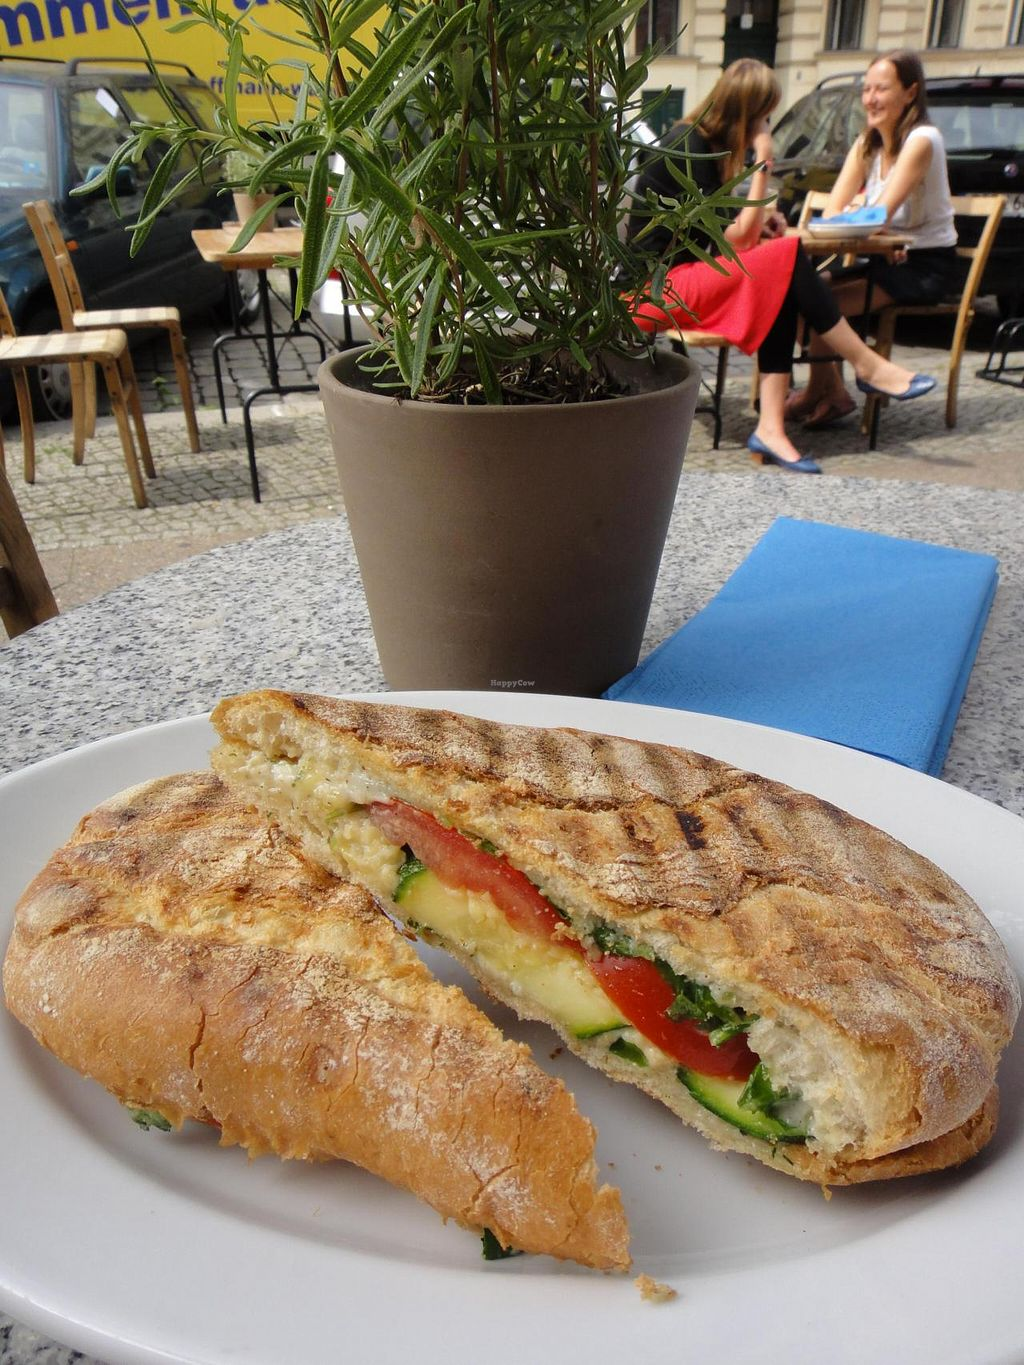 "Photo of CLOSED: Freckles  by <a href=""/members/profile/EmilyBennett3050"">EmilyBennett3050</a> <br/>Panini with vegan cheese and zucchini, 4 euros, at Freckles.  <br/> August 15, 2014  - <a href='/contact/abuse/image/31087/77036'>Report</a>"